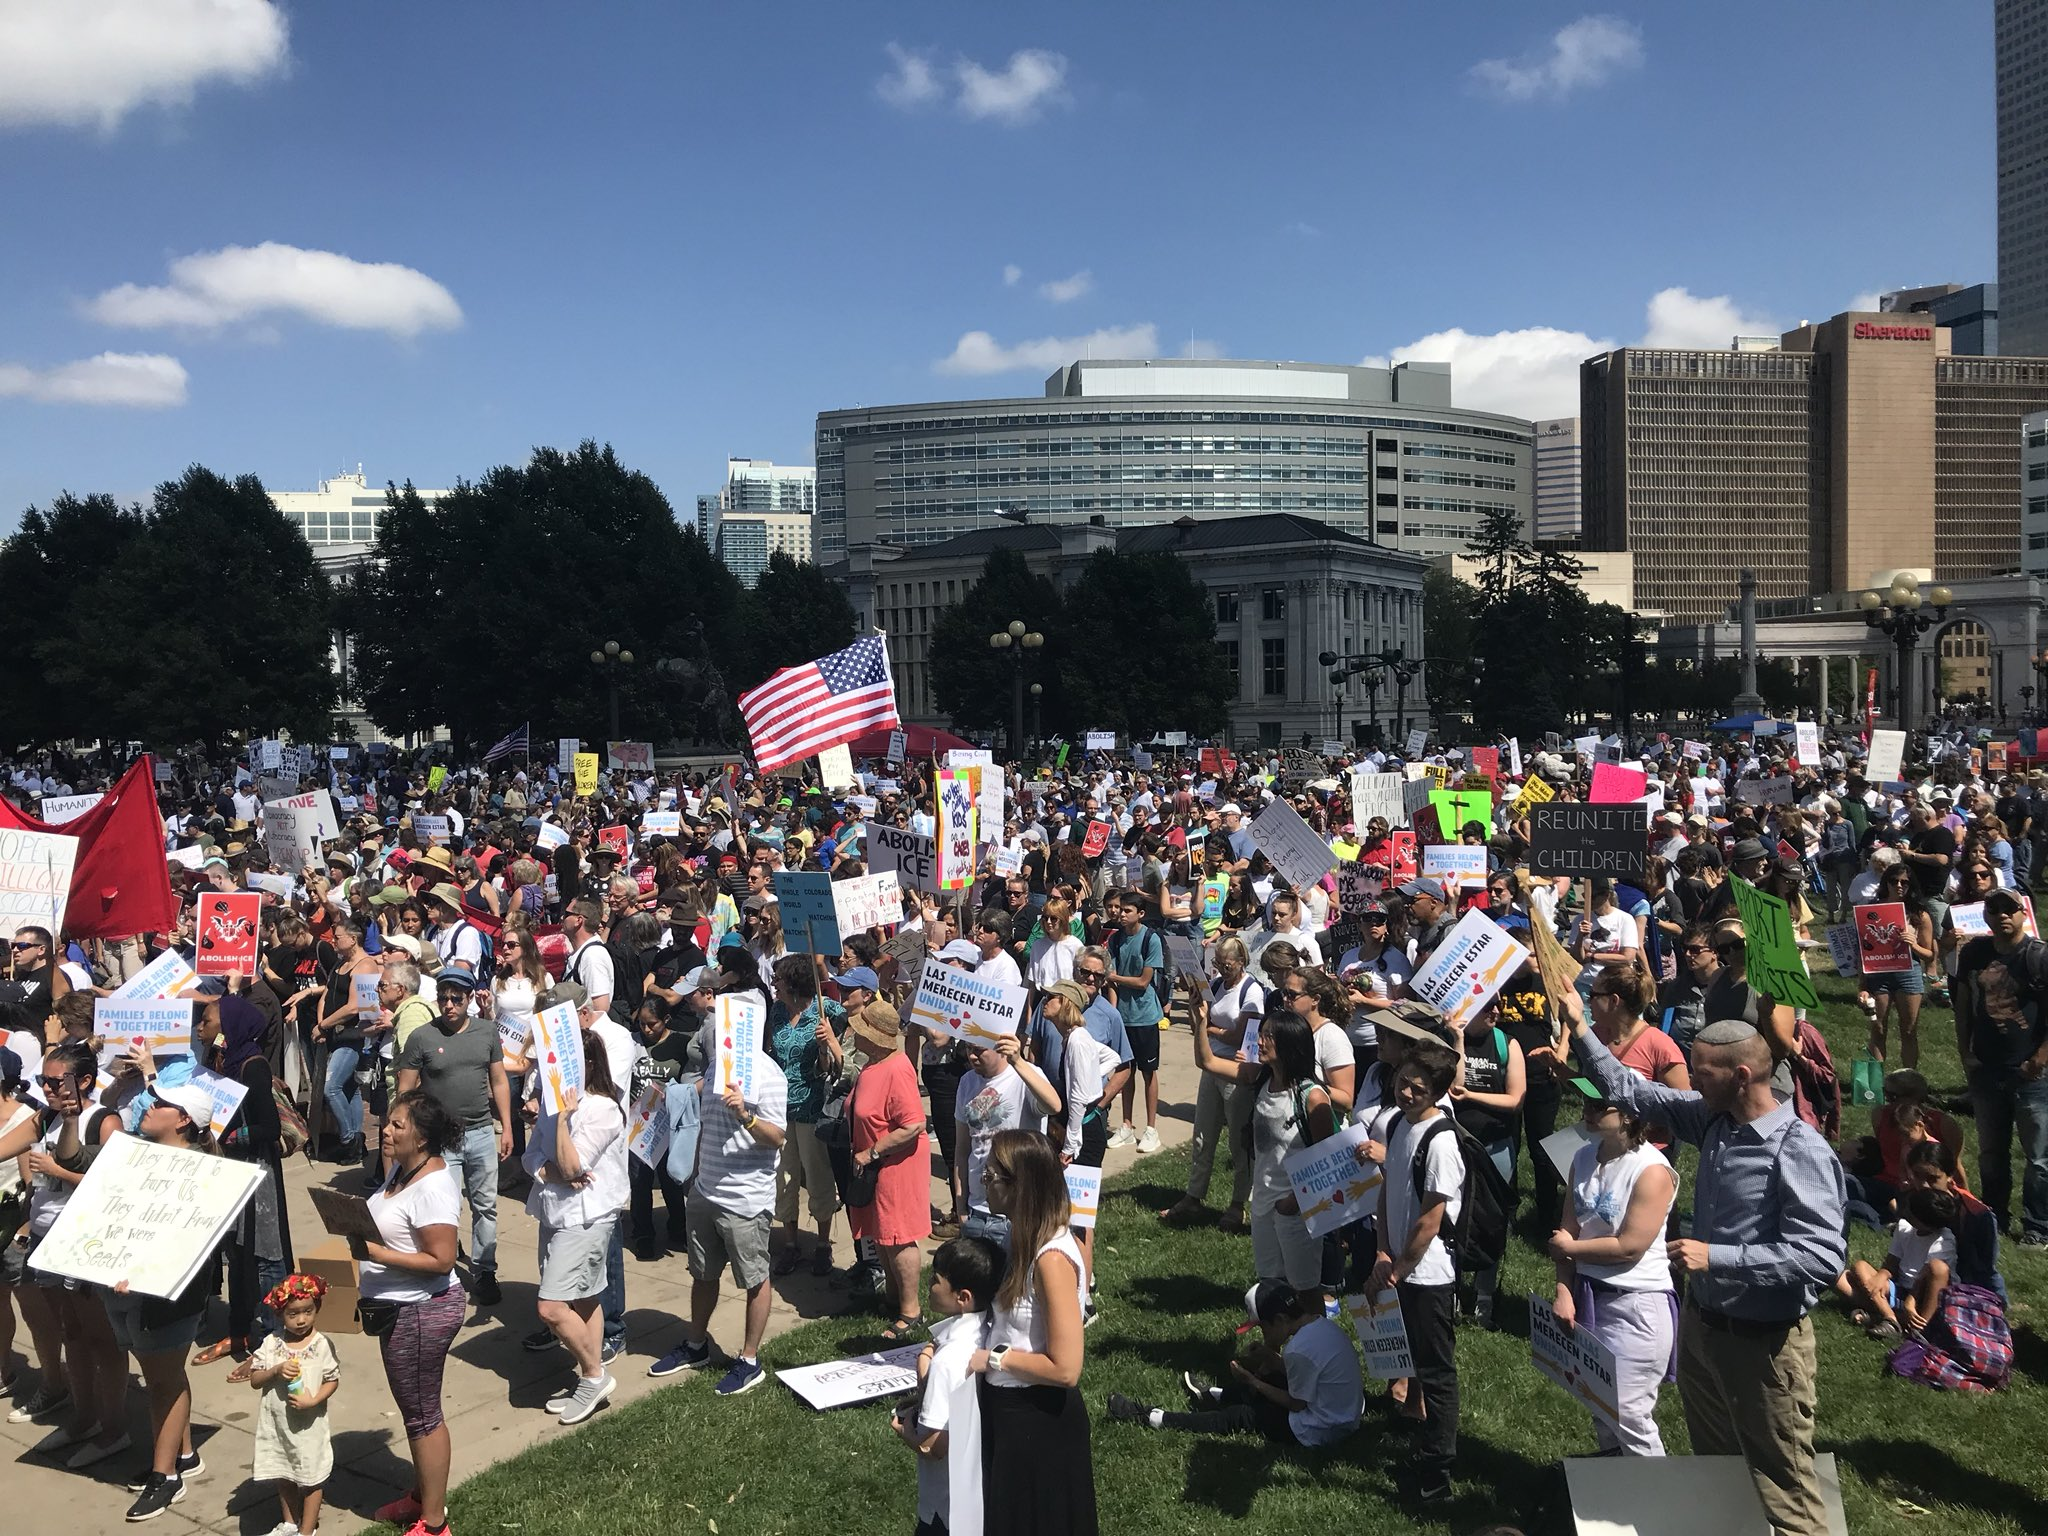 Photo: Denver immigration rally June 2018